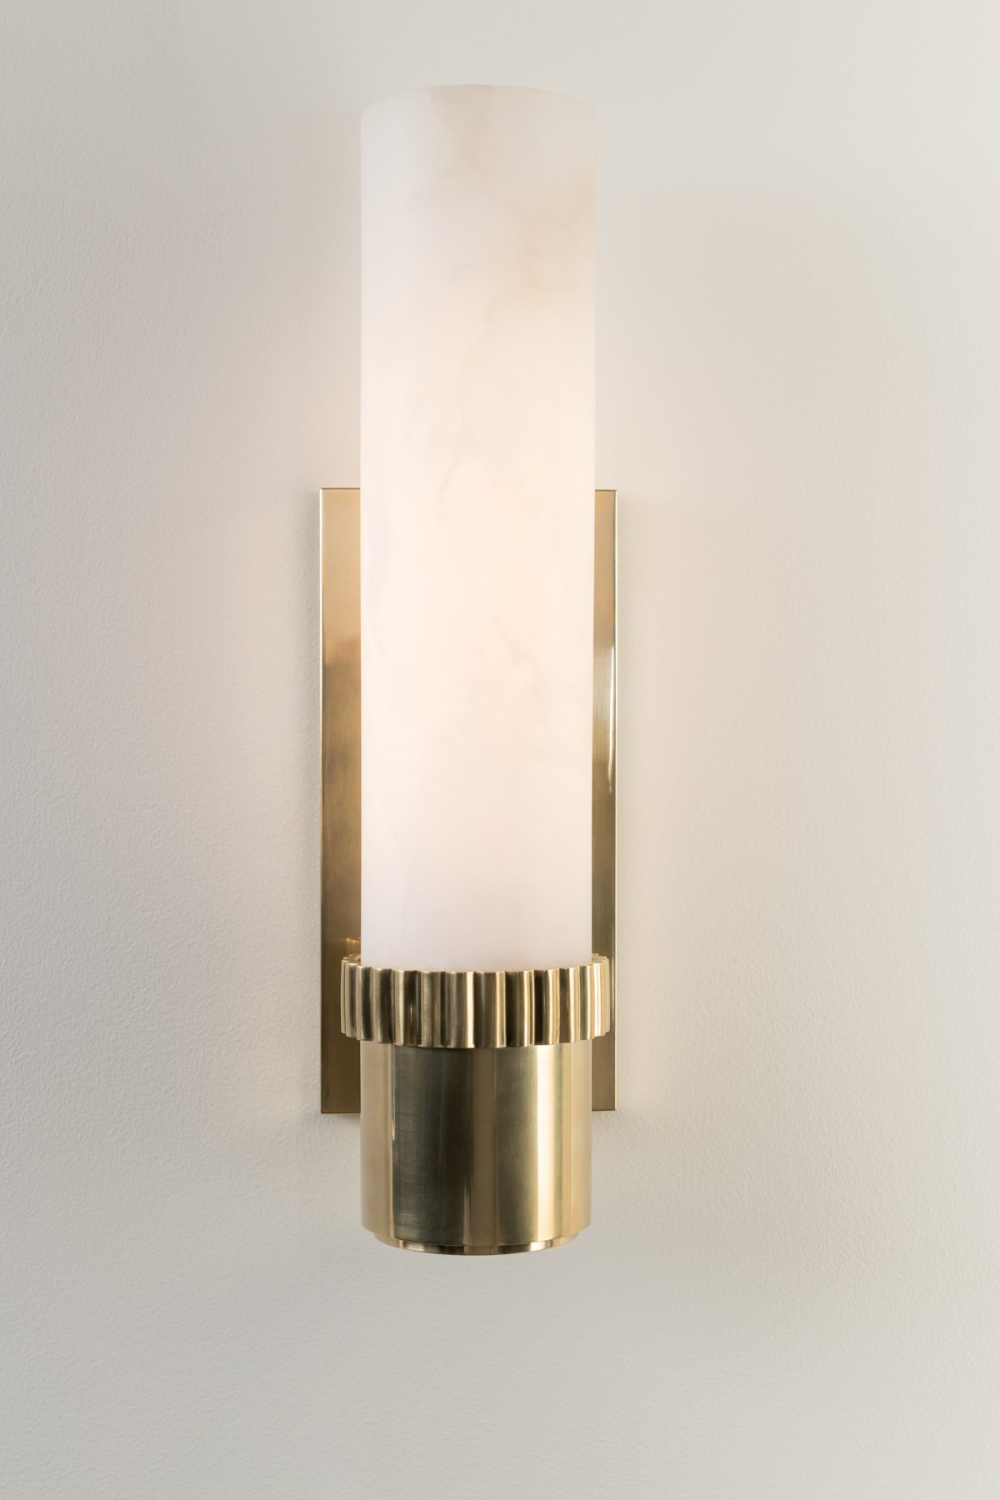 Argon Hudson Valley Lighting Sconces Wall Sconces